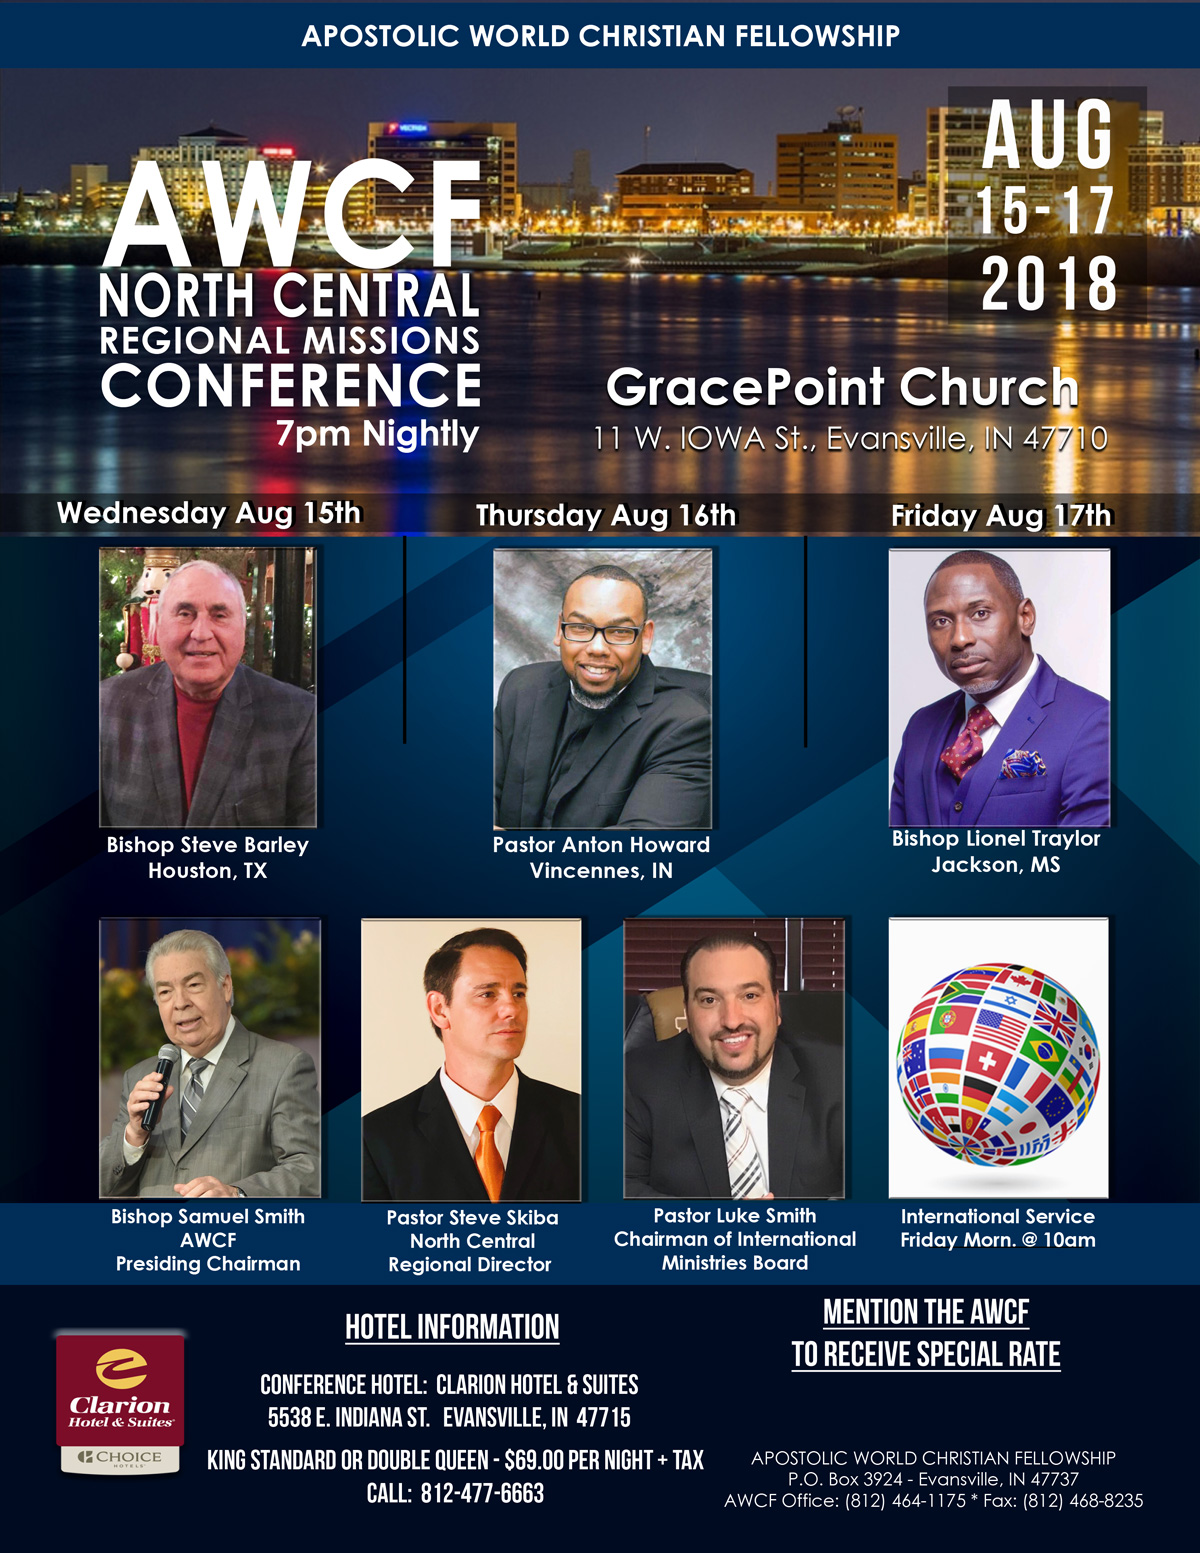 AWCF North Central Missions Conference, August 15-17, 2018